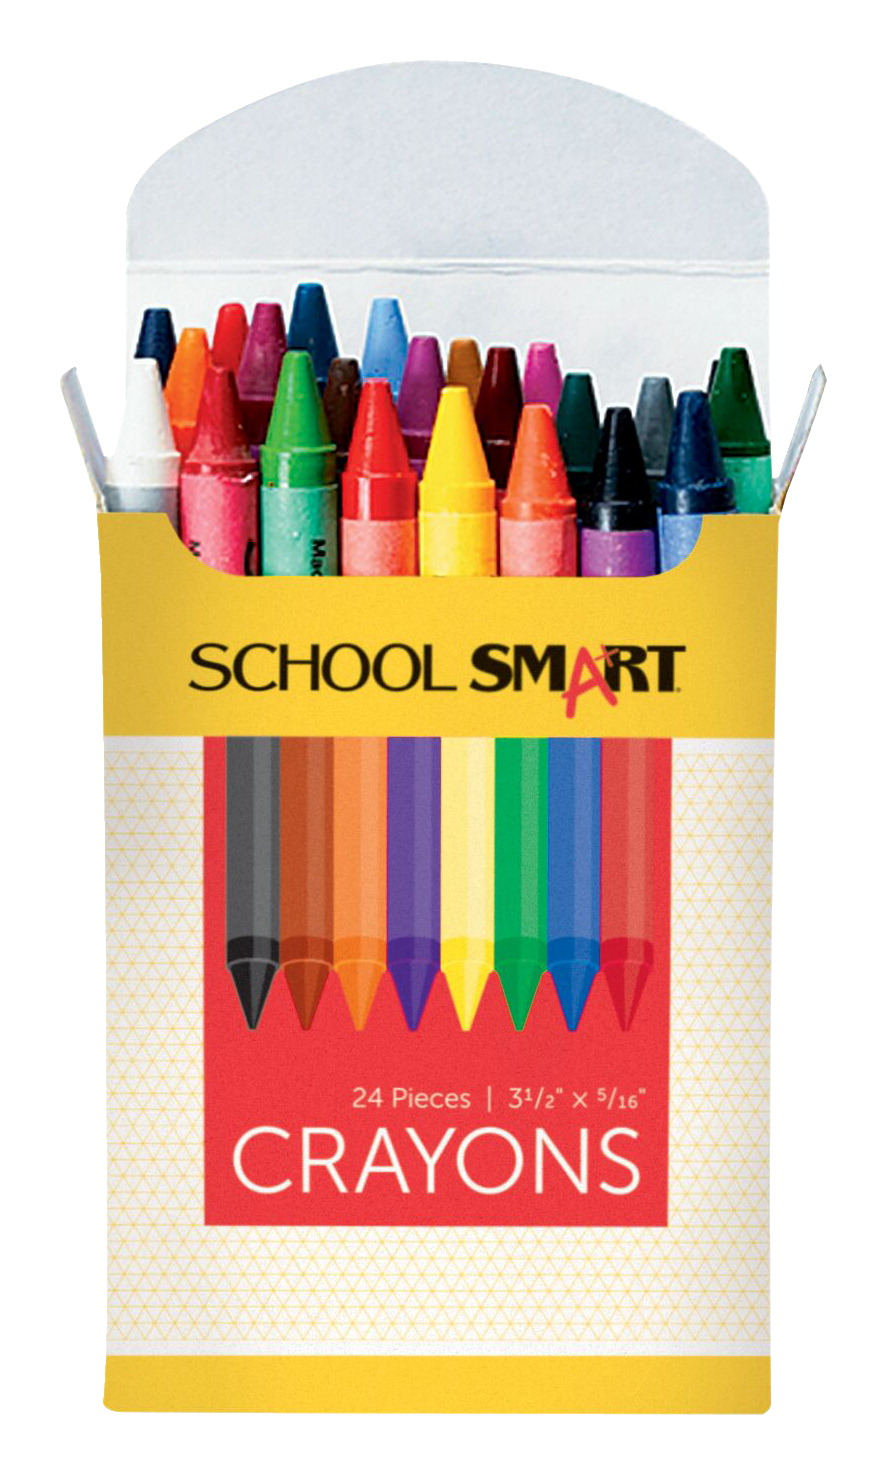 School Smart Non-Toxic Regular Crayon in Tuck Box, 5/16 X 3-1/2 in, Assorted Color, Pack of 24